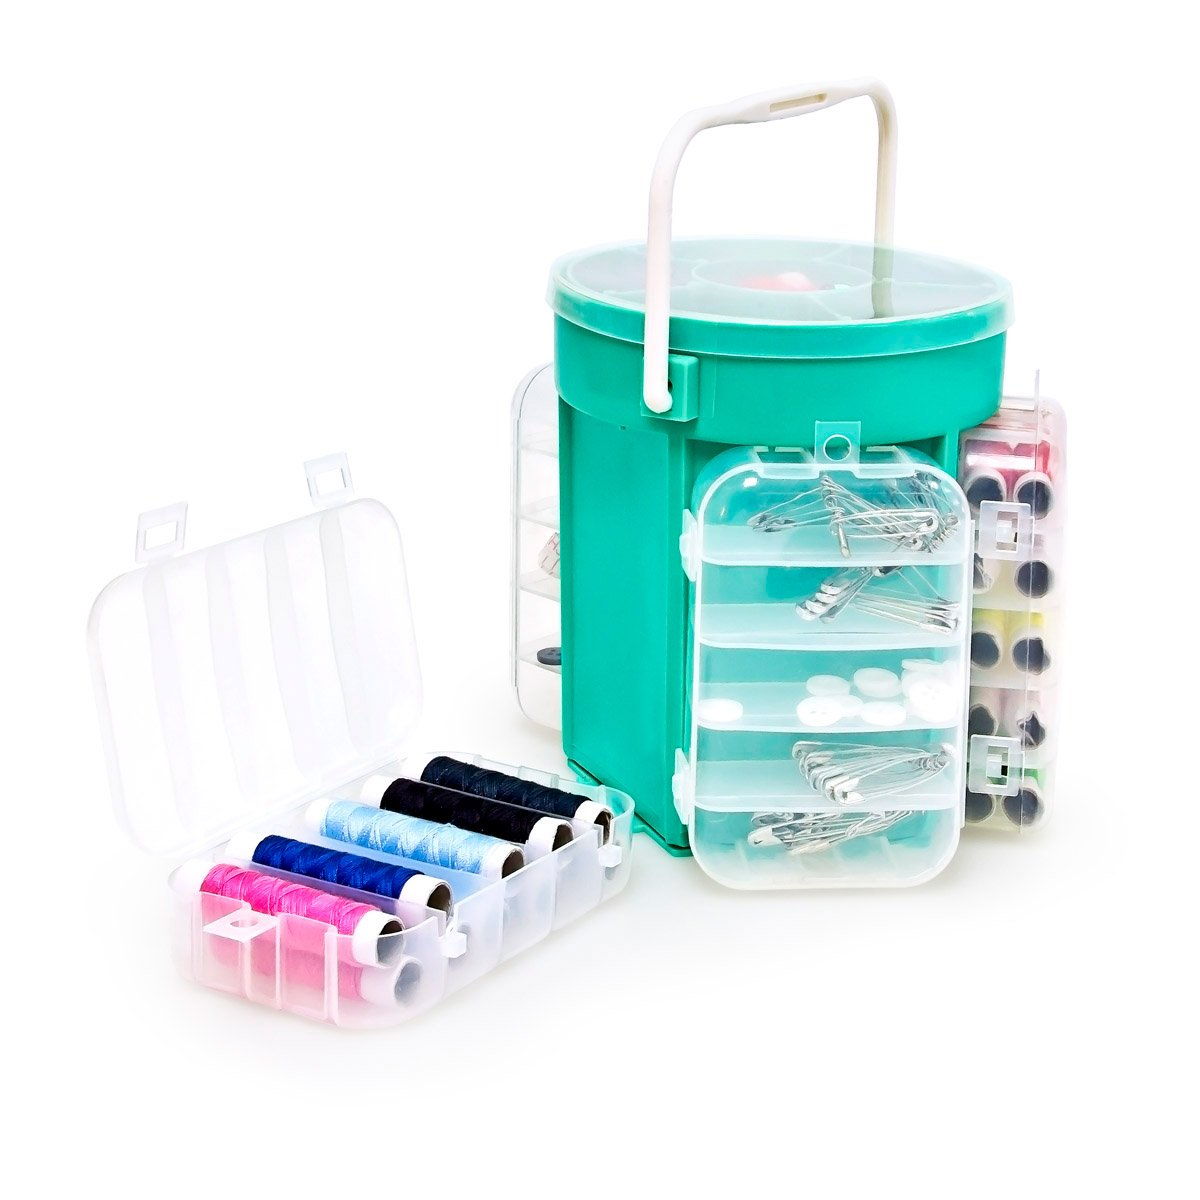 Relaxdays Sewing Box With 200 Parts + Box Sewing Kit Sewing Basket Box Chest Arts & Crafts 10014702